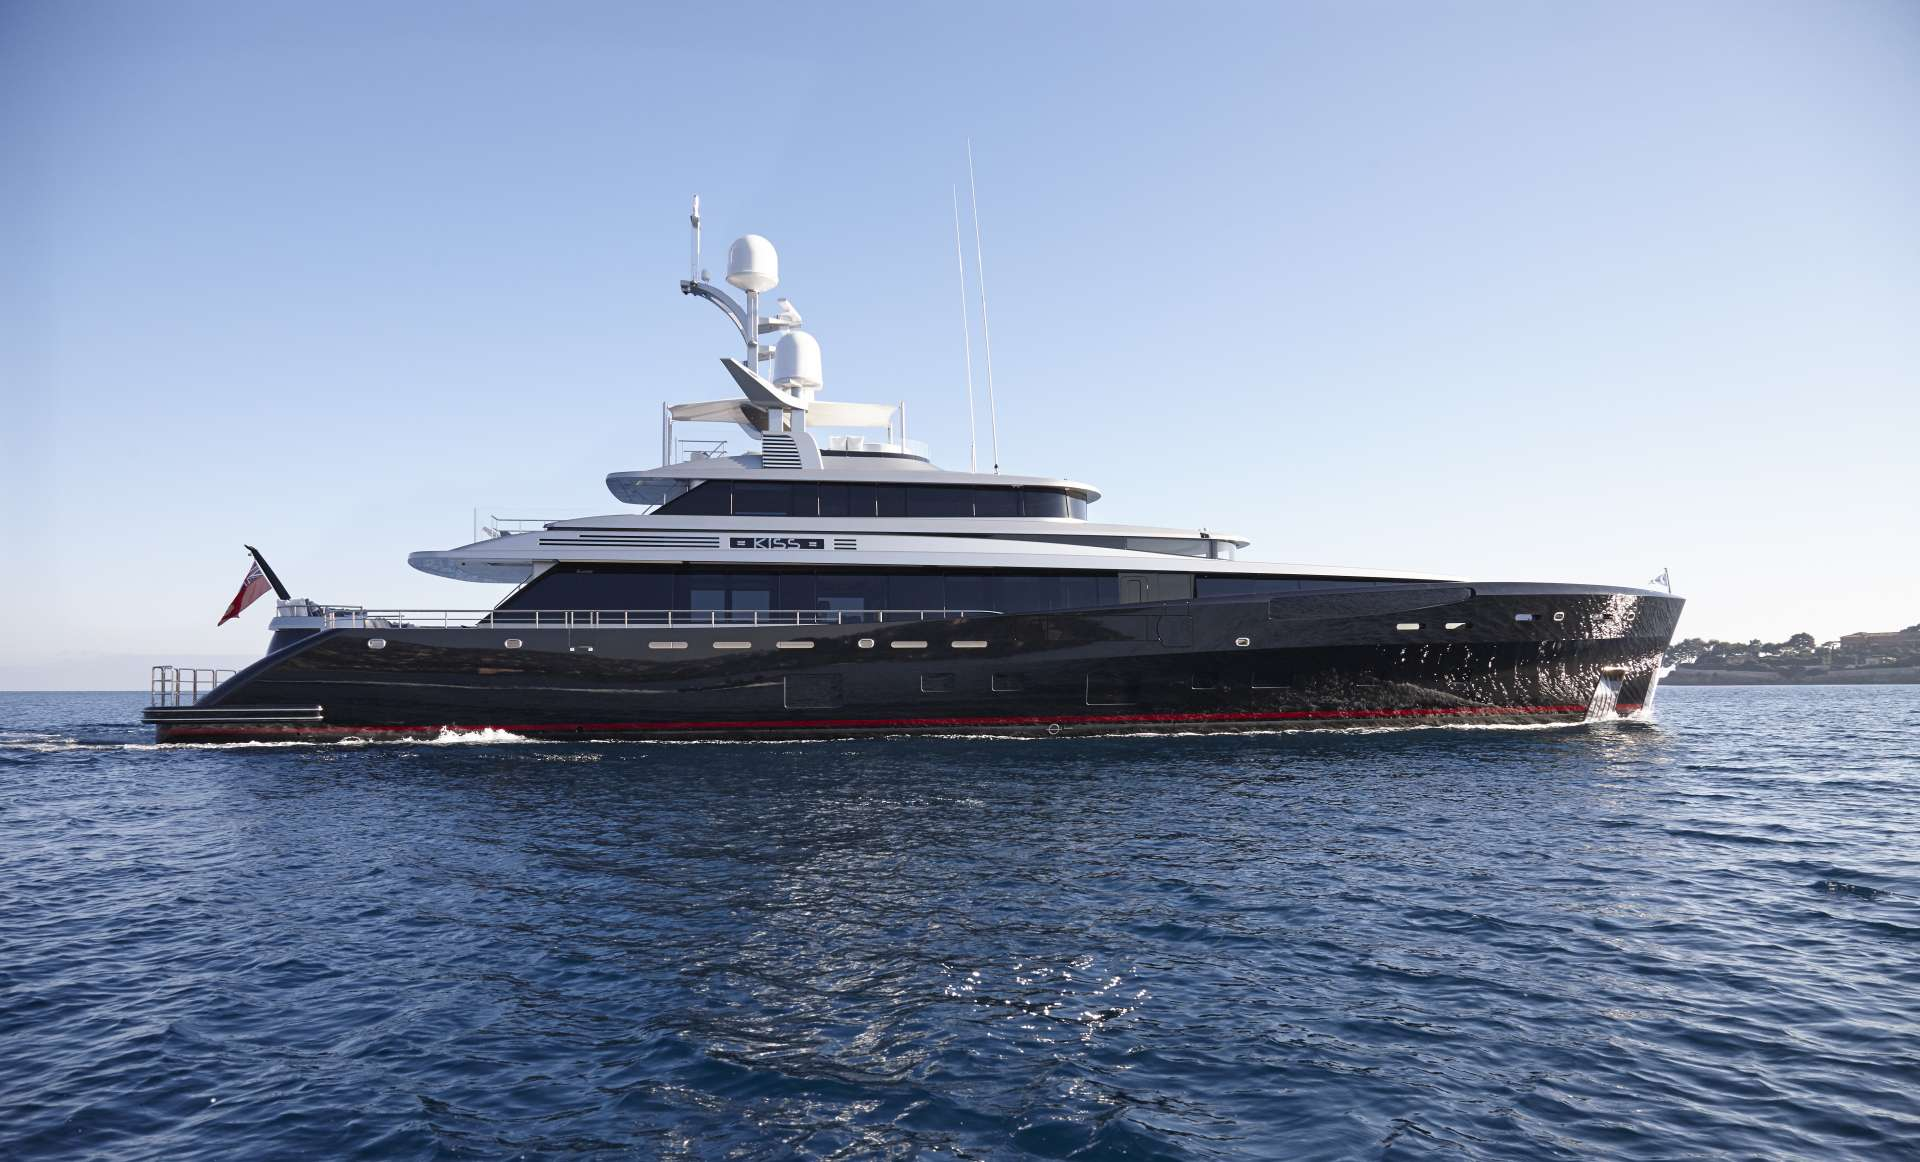 Kiss Feadship Royal Dutch Shipyards